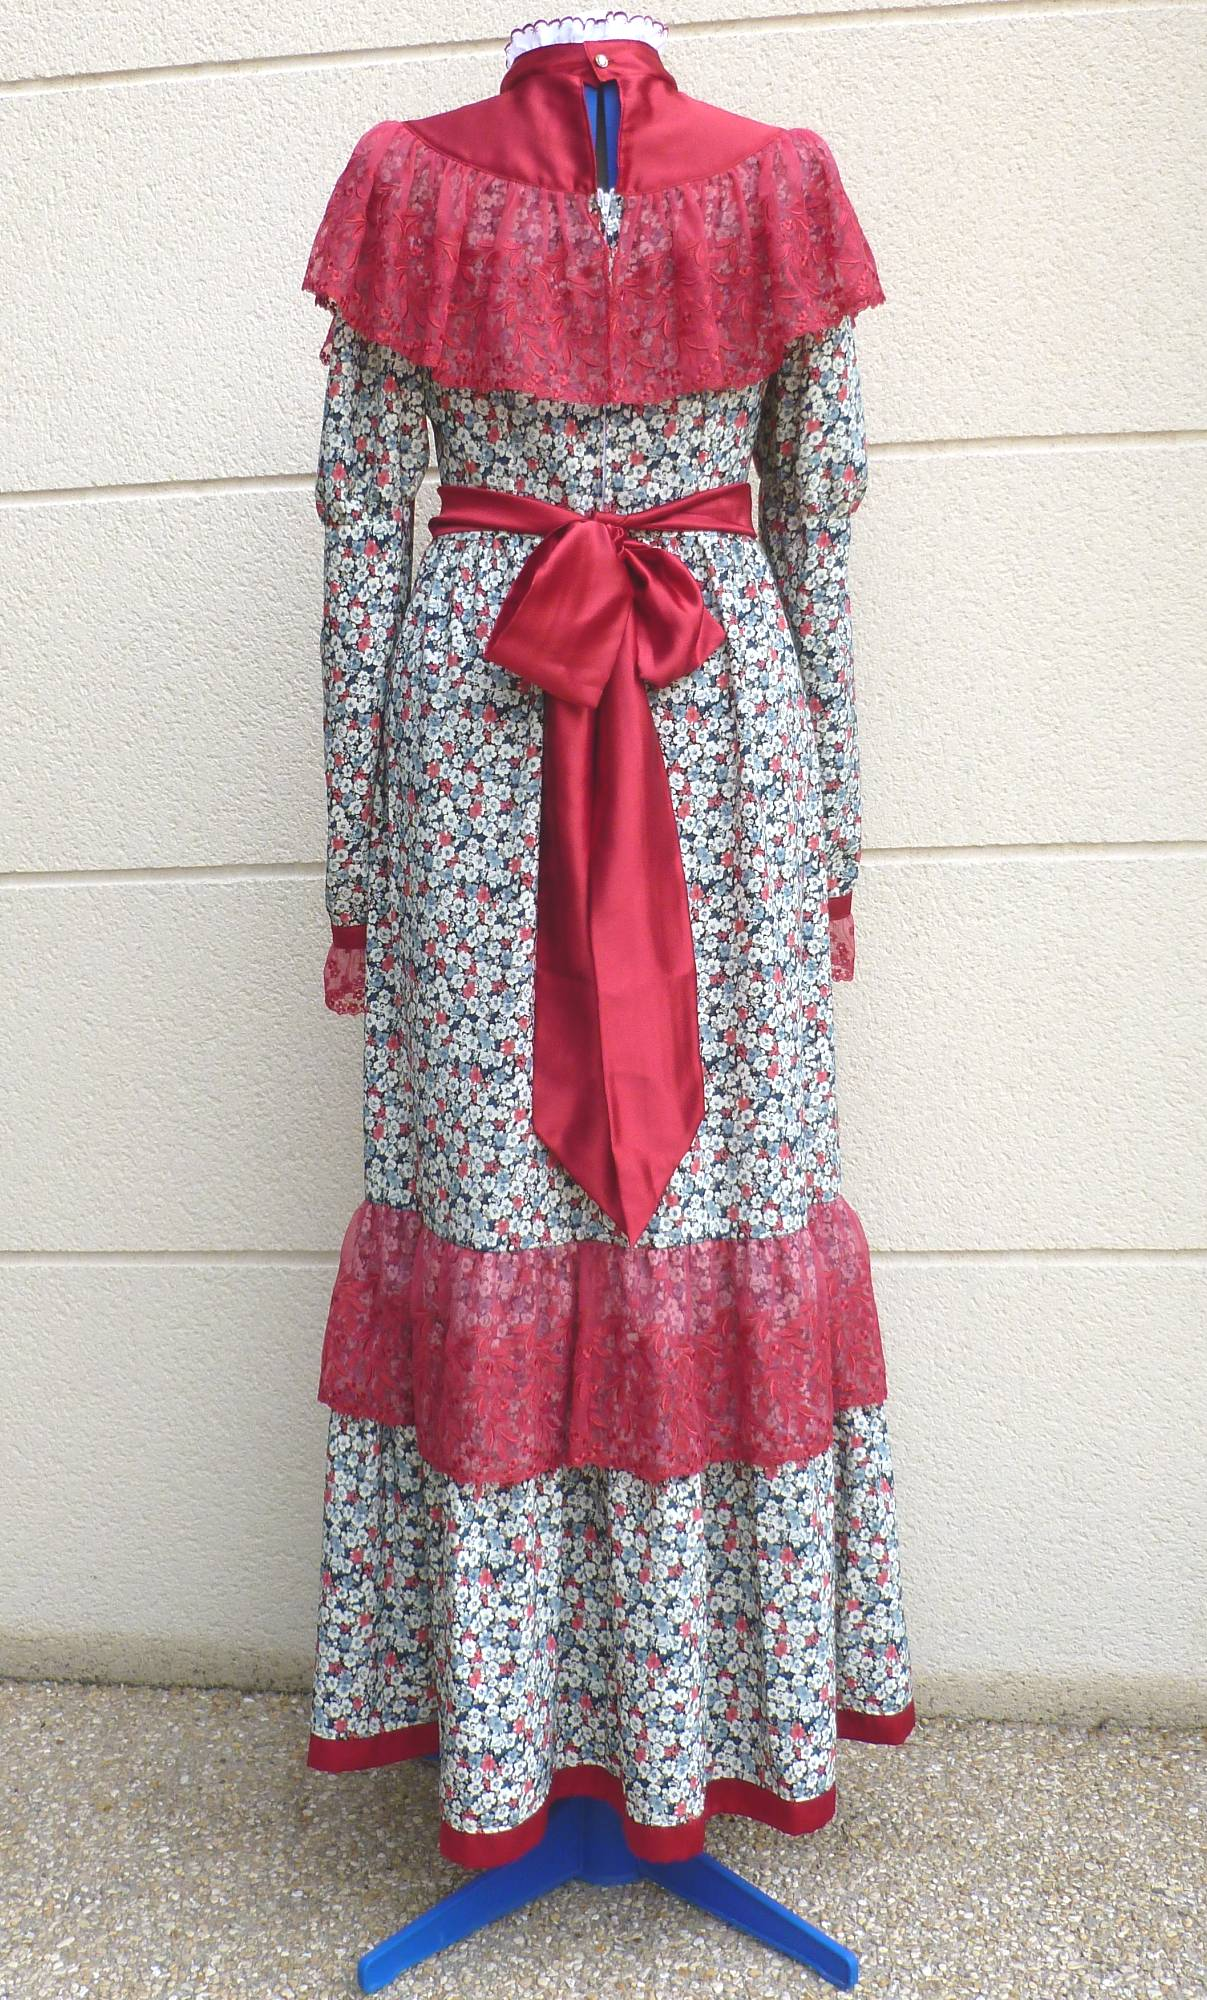 Robe-1900-taille-42-3